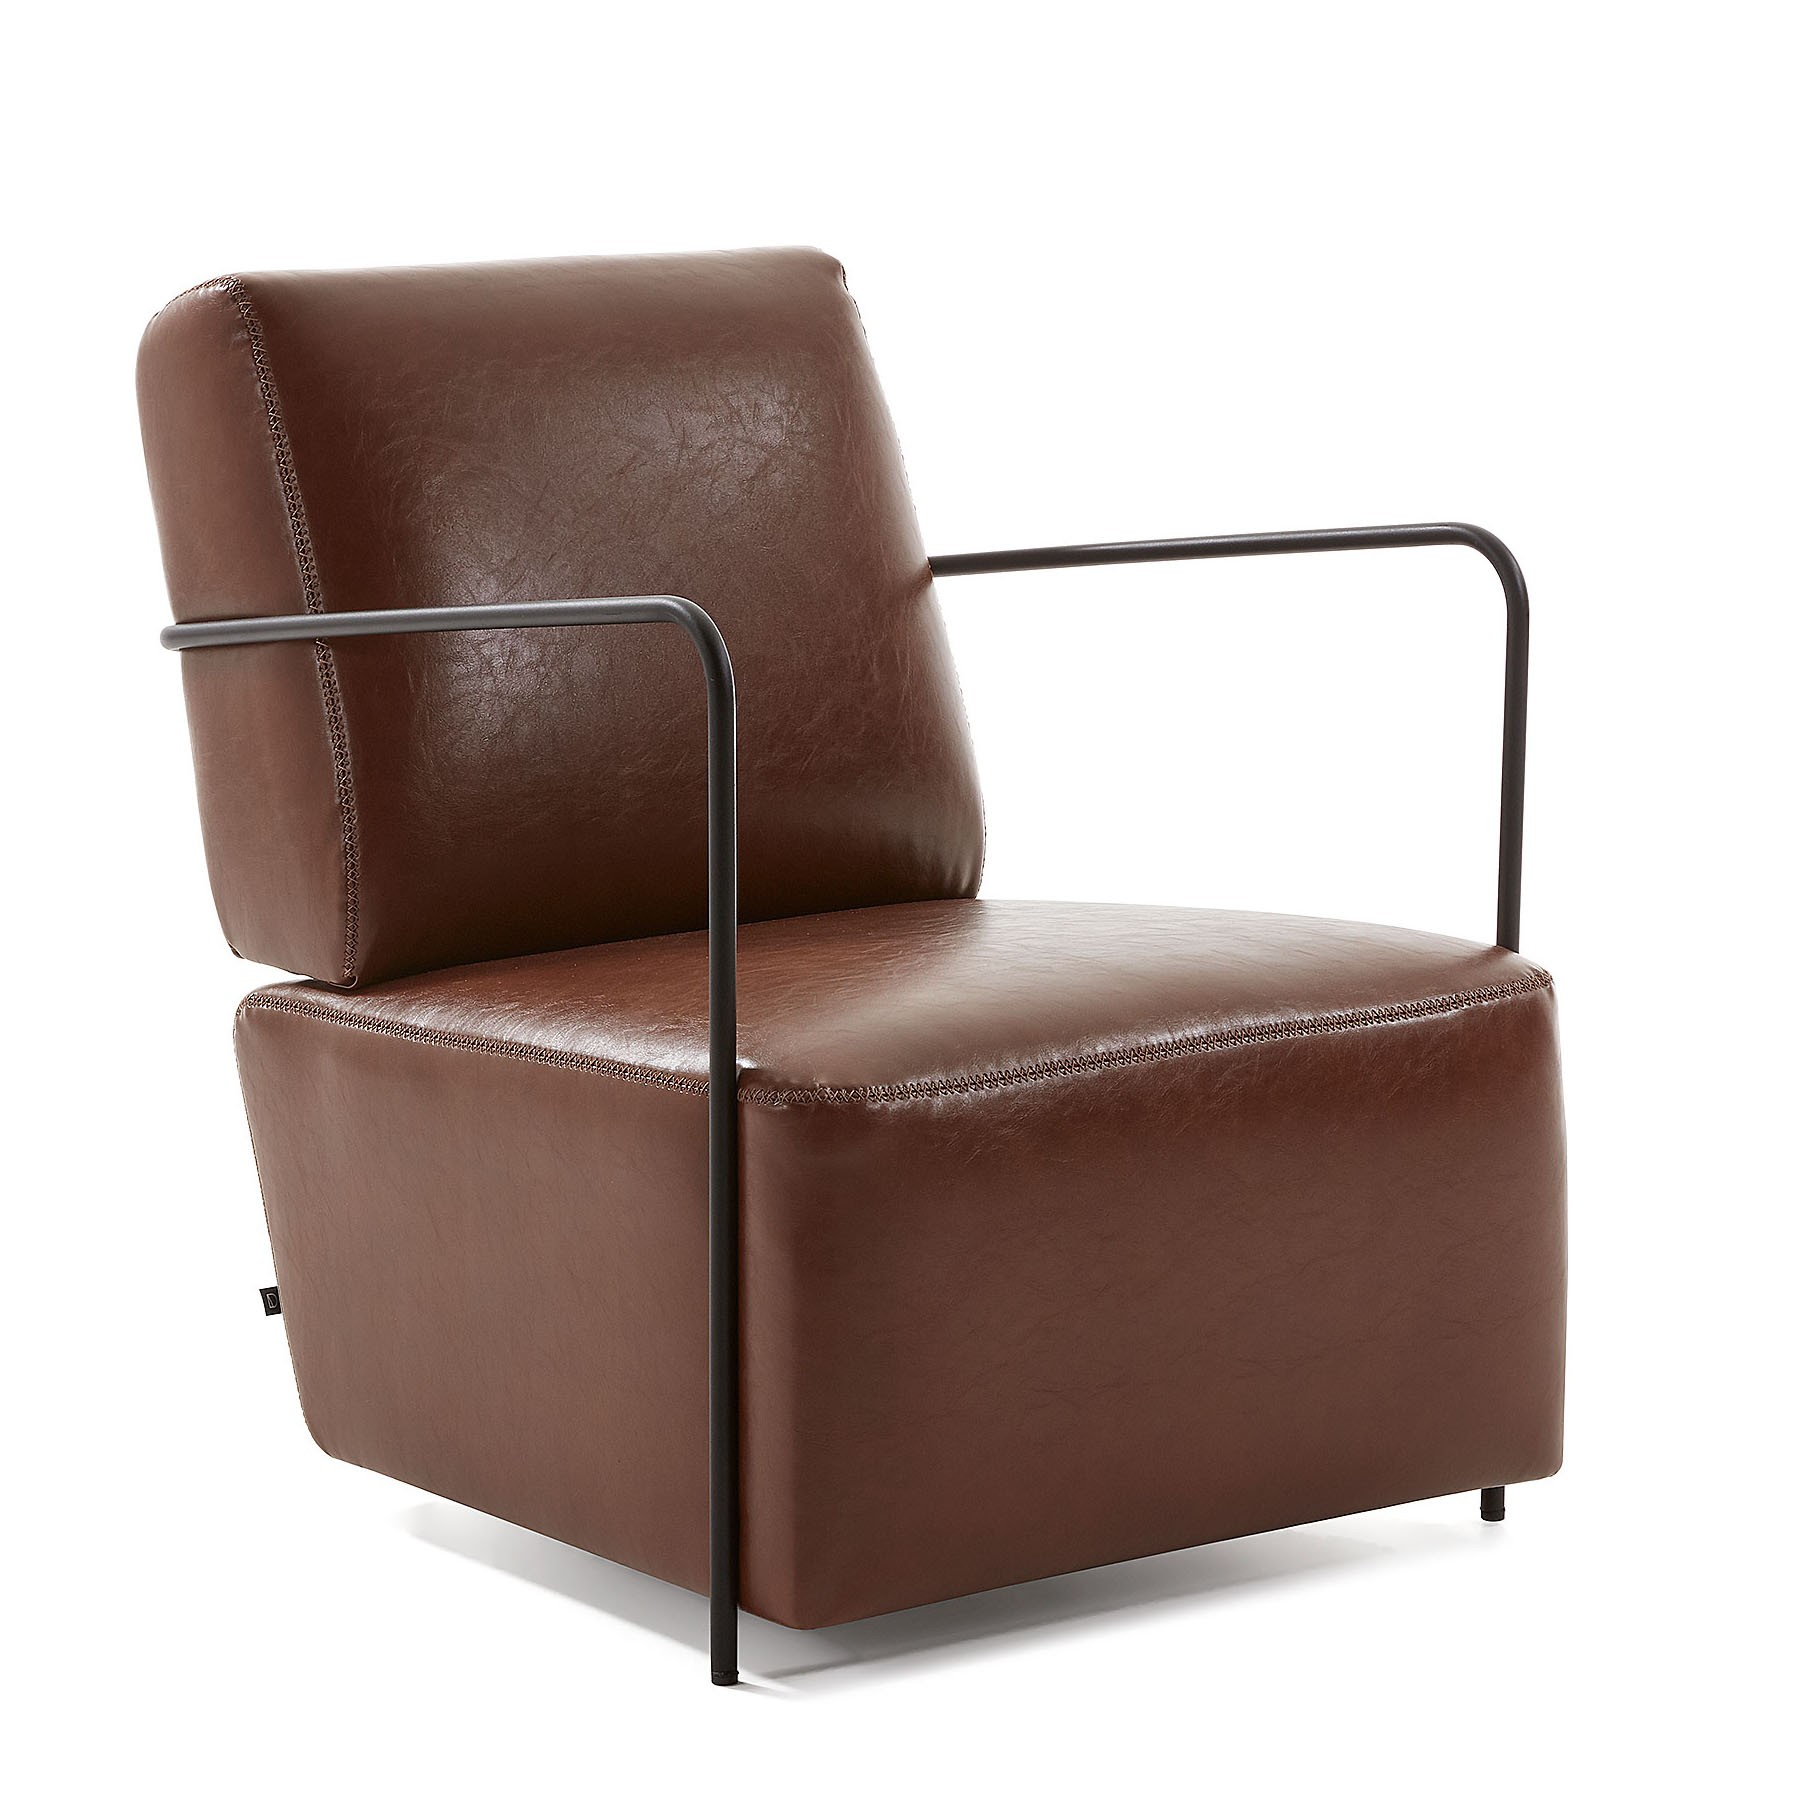 Kone Synthetic Leather Lounge Armchair, Brown